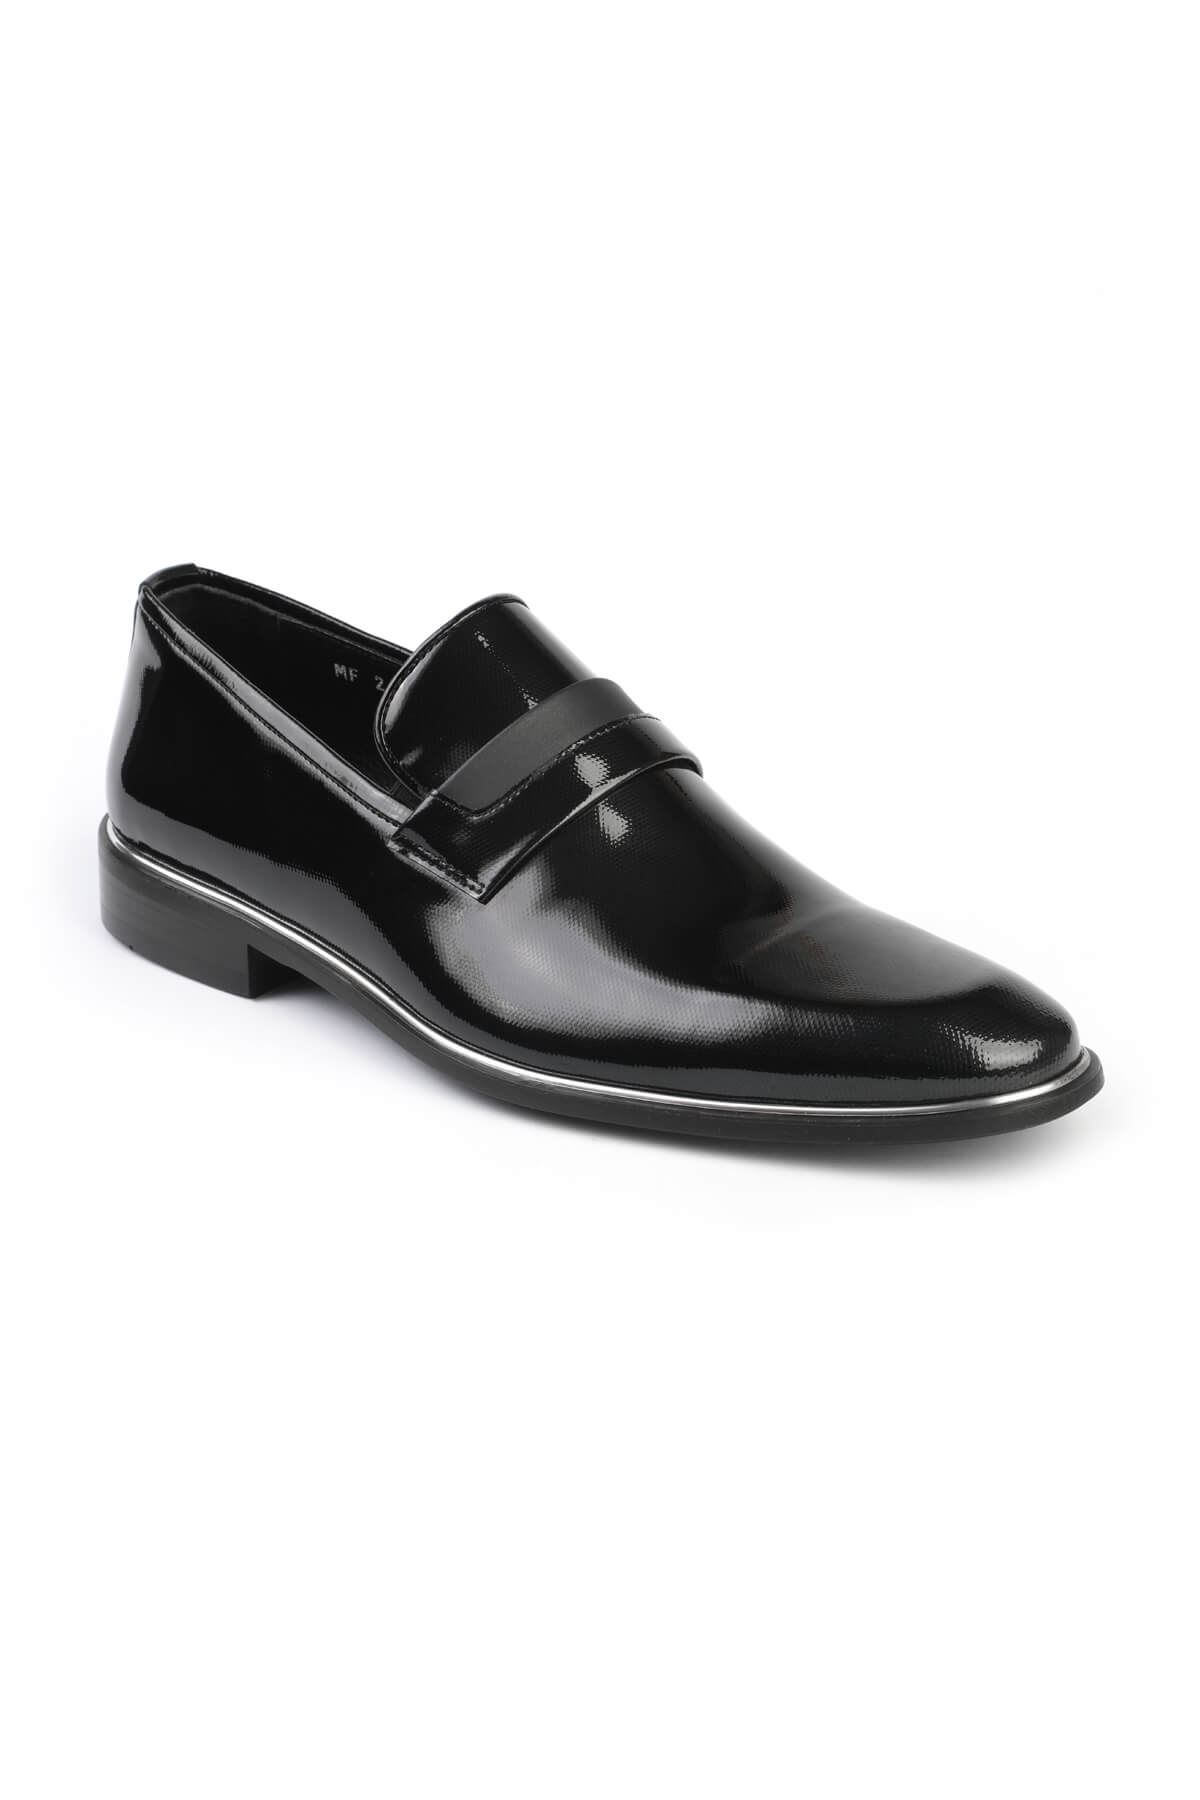 Libero 2602 Black Classic Shoes